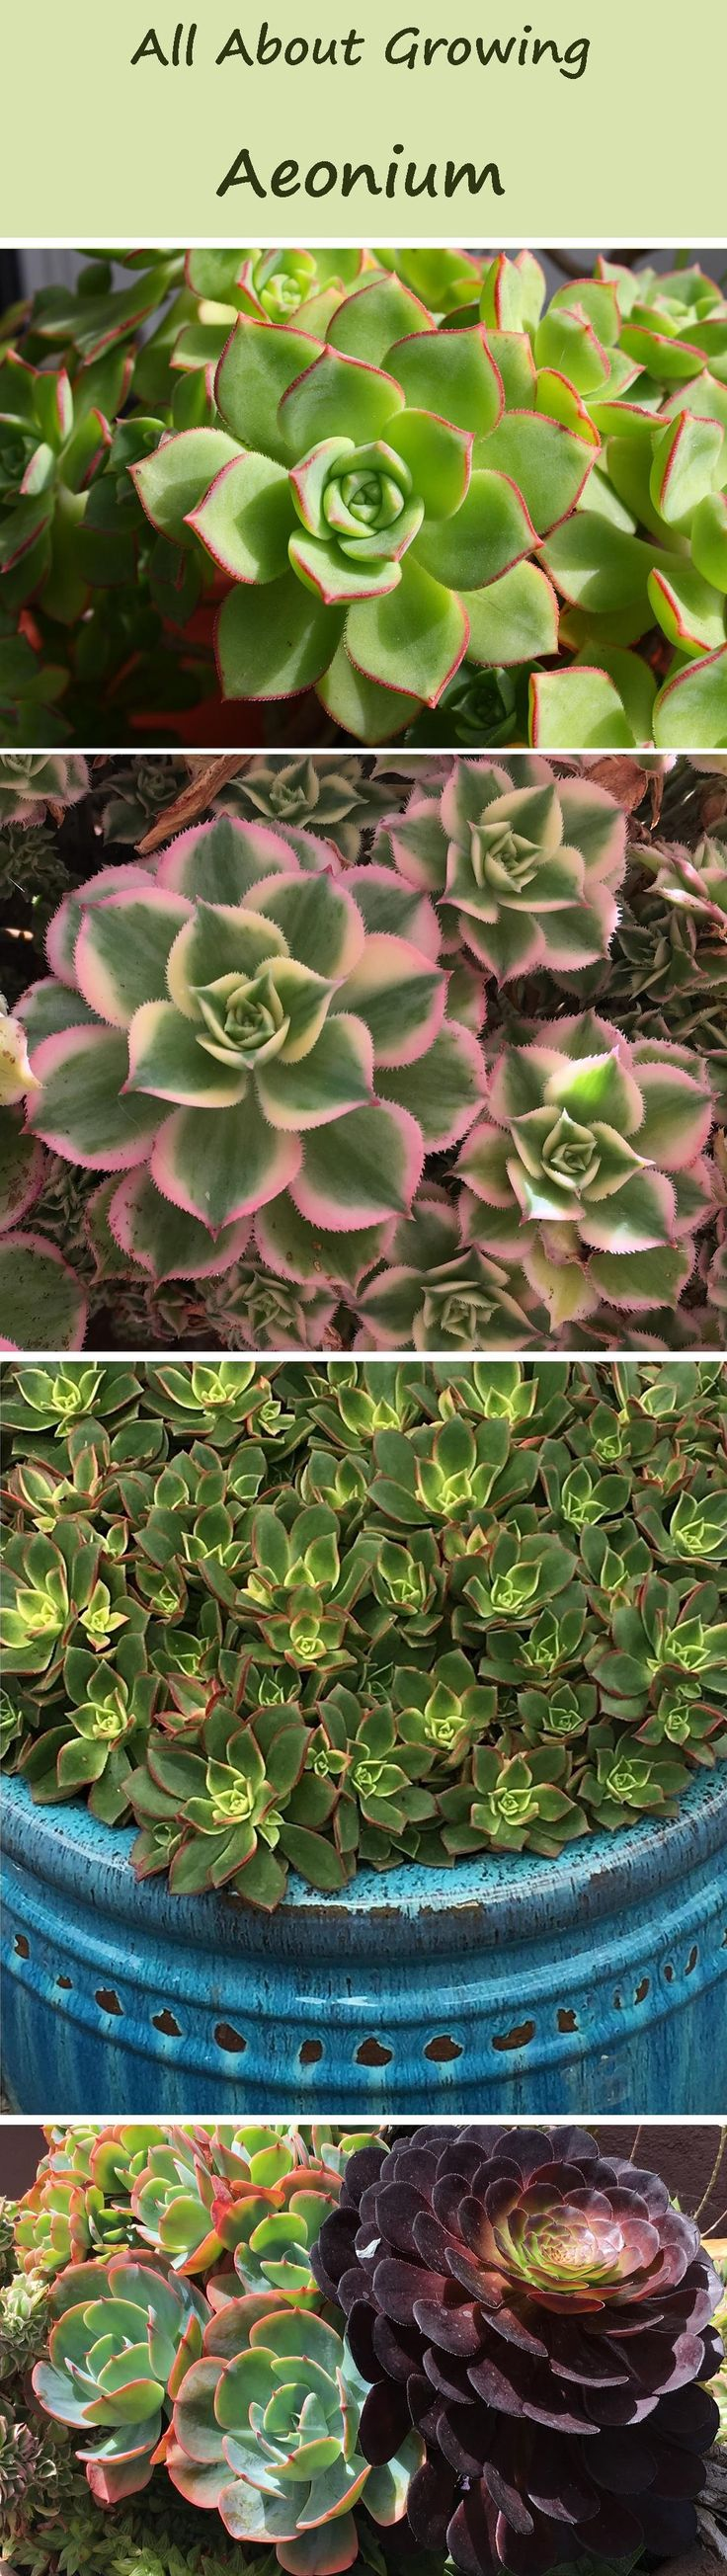 Aeonium are gorgeous, colorful succulents. The very easiest rosette succulent to grow and propagate. Learn more here! :)